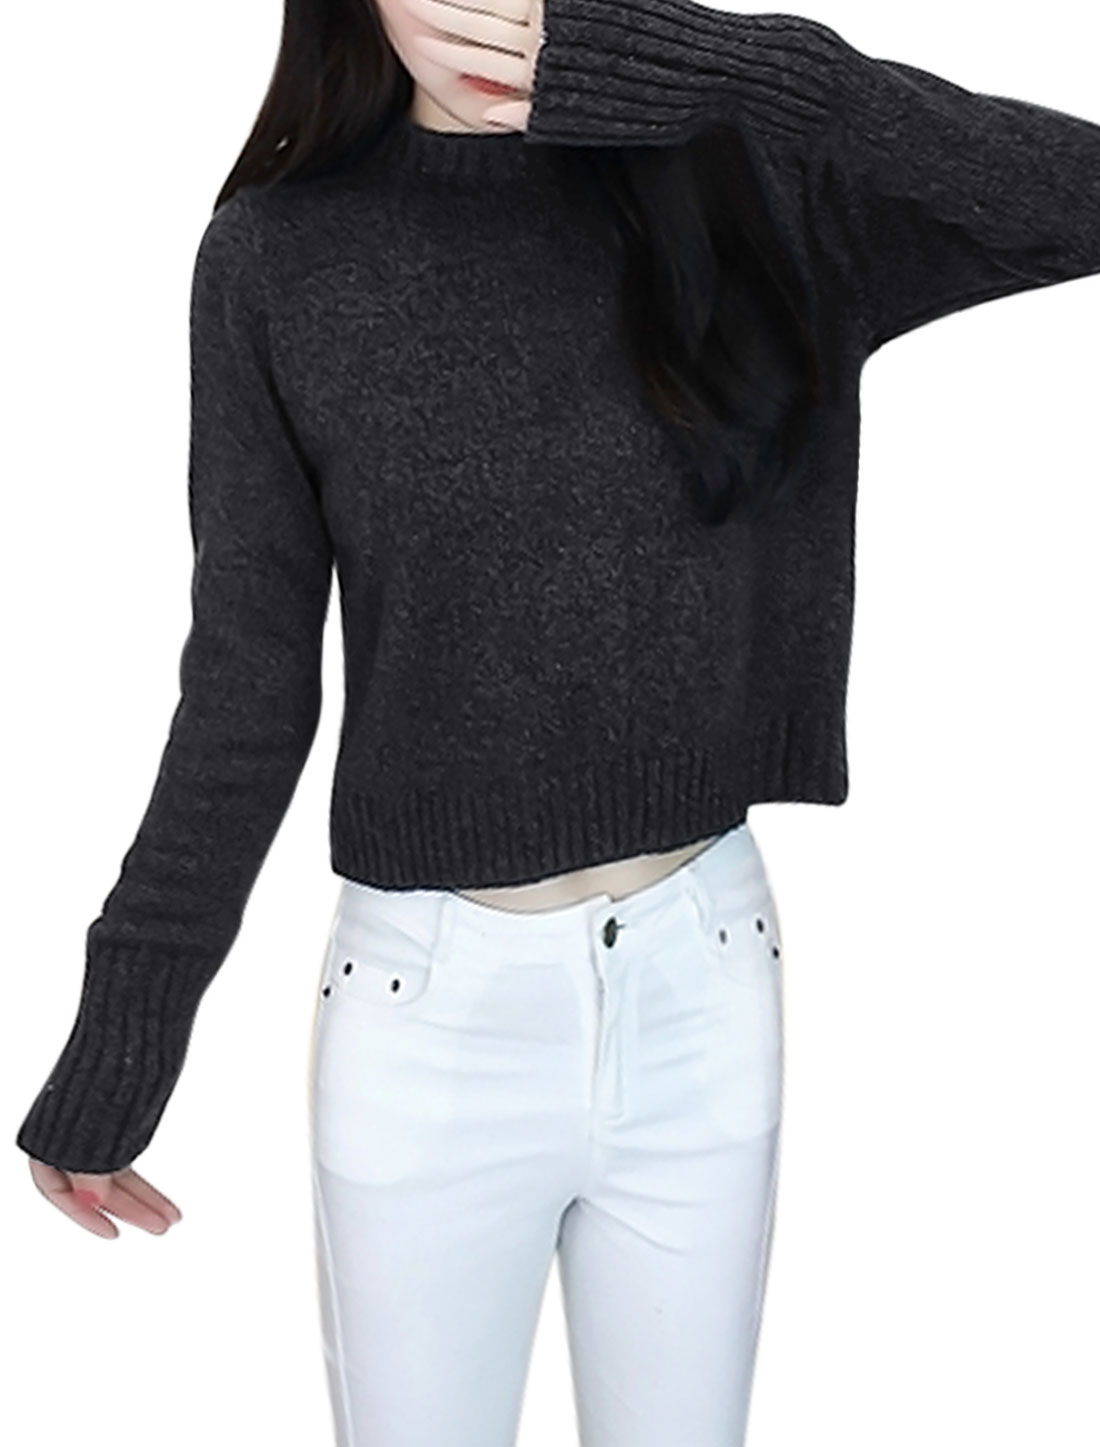 Women-Crew-Neck-Long-Sleeves-Lace-Up-Inverted-Pleated-Back-Knit-Top